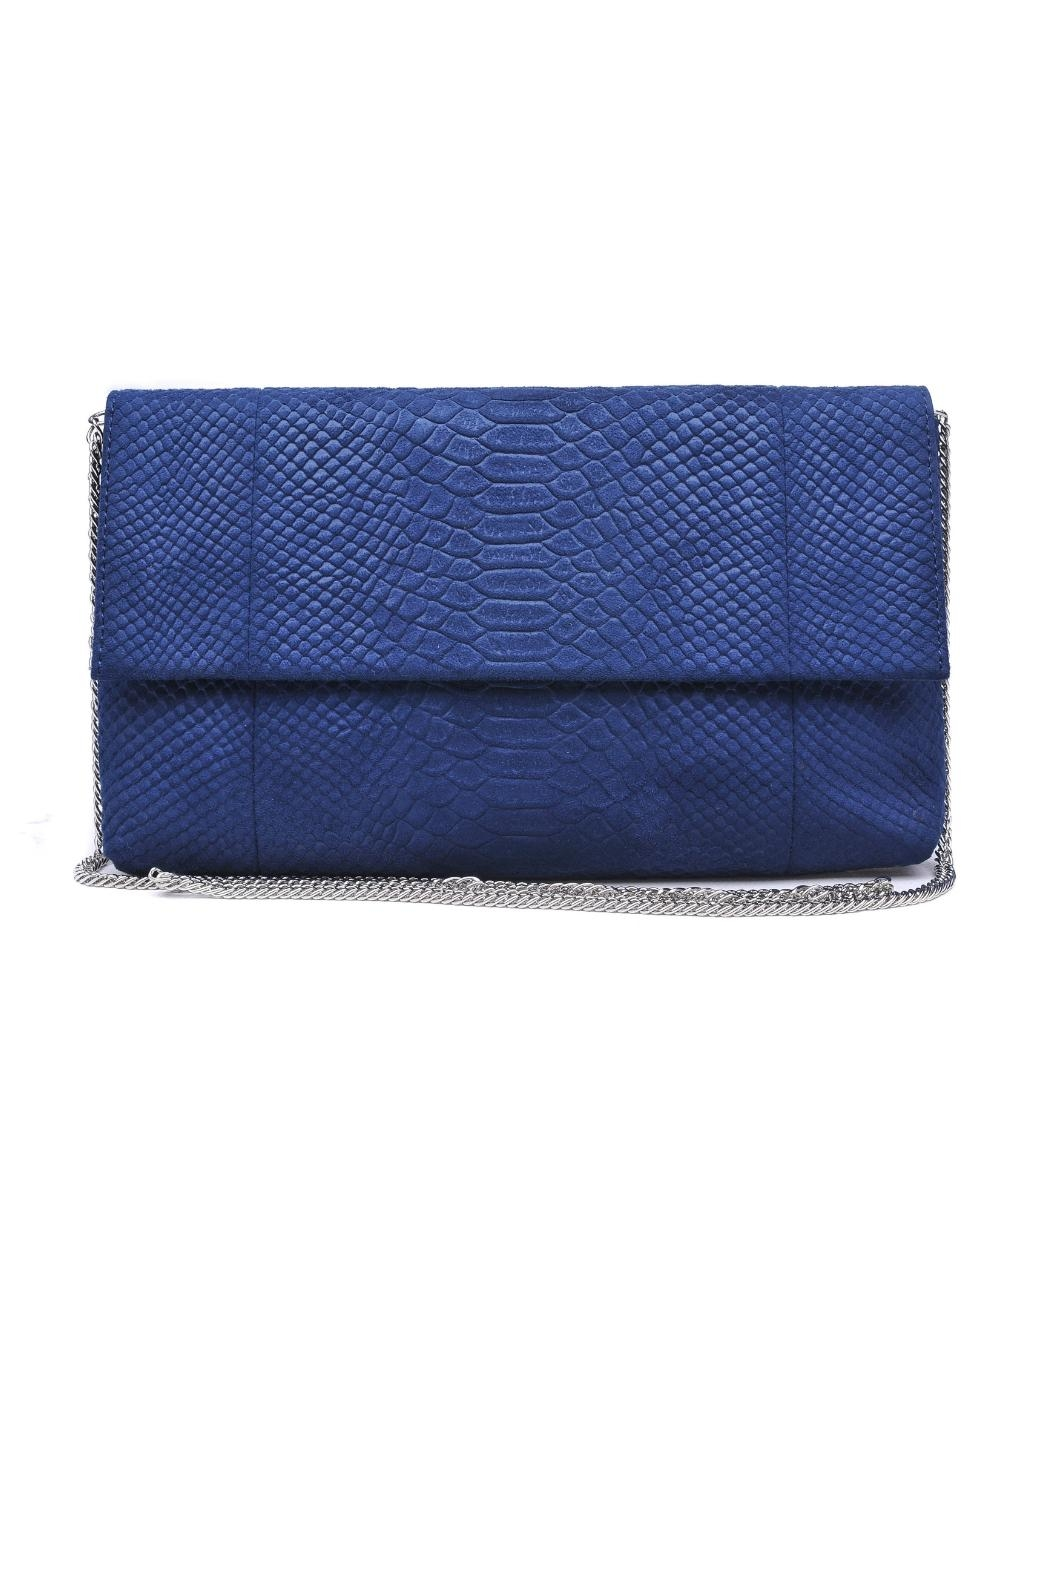 Urban Expressions Navy Phoebe Clutch - Main Image